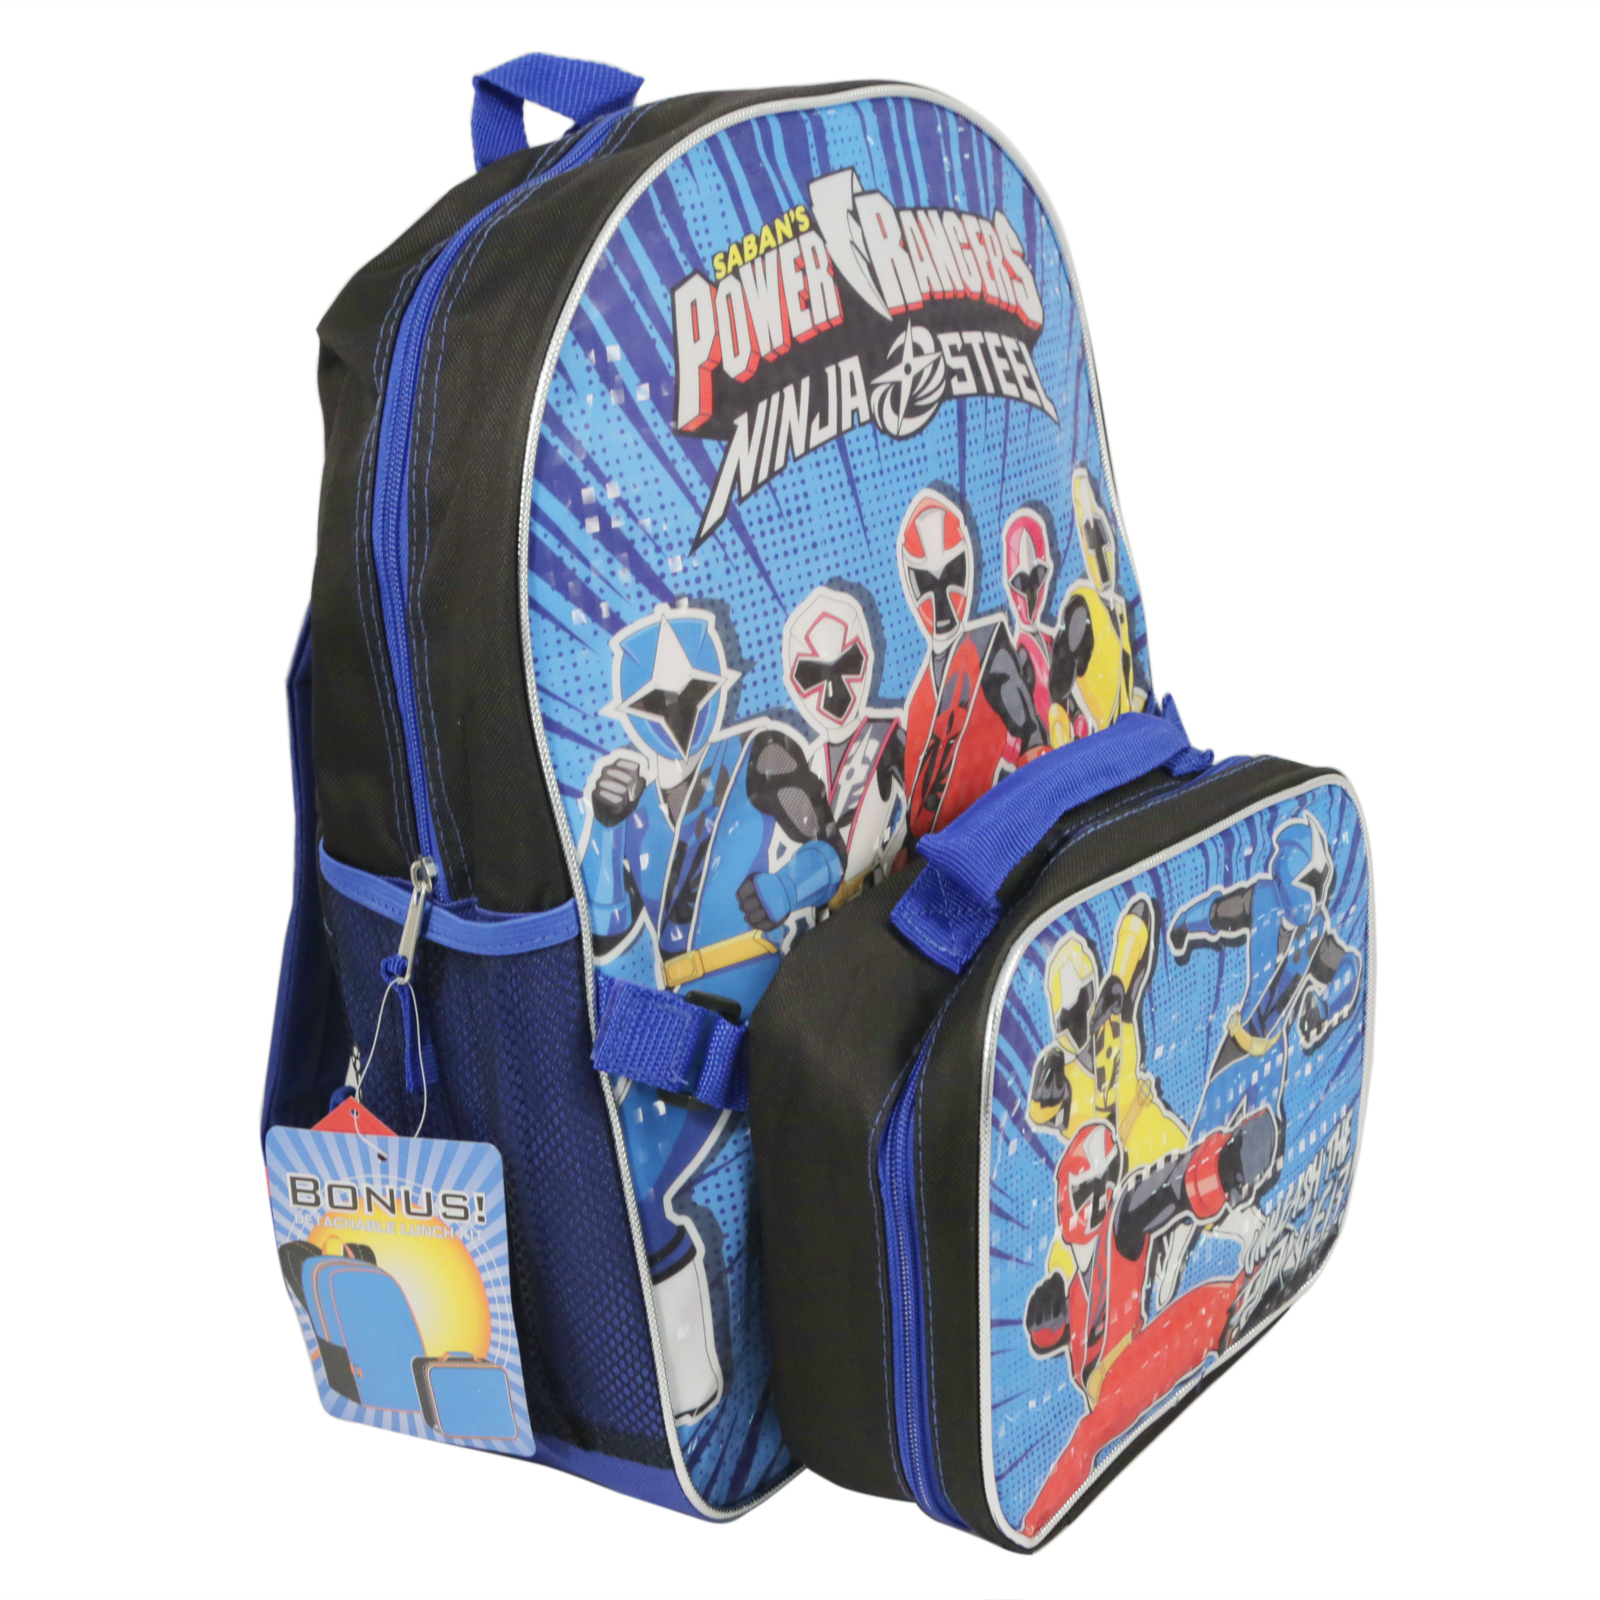 Blue Power Rangers Ninja Steel Backpack and Lunch Box Set